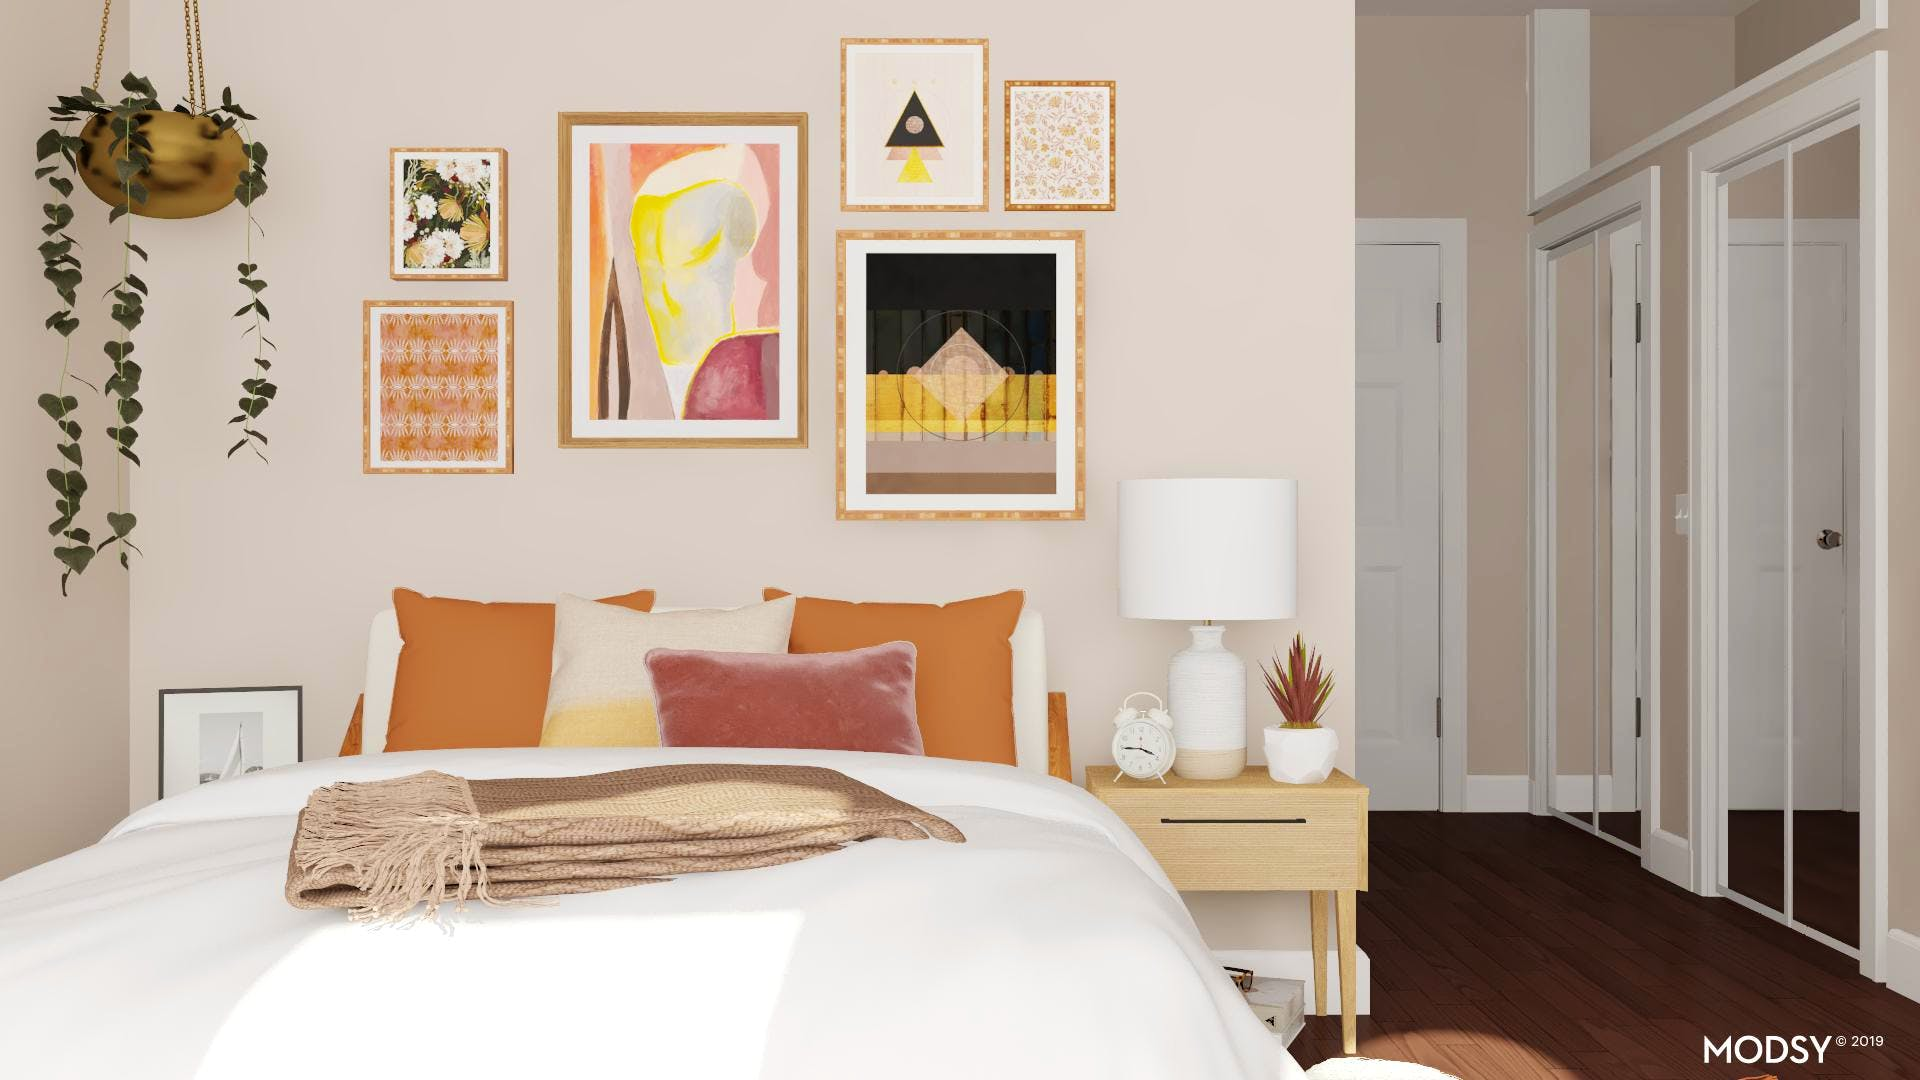 Bedroom Gallery Wall Full of Personality